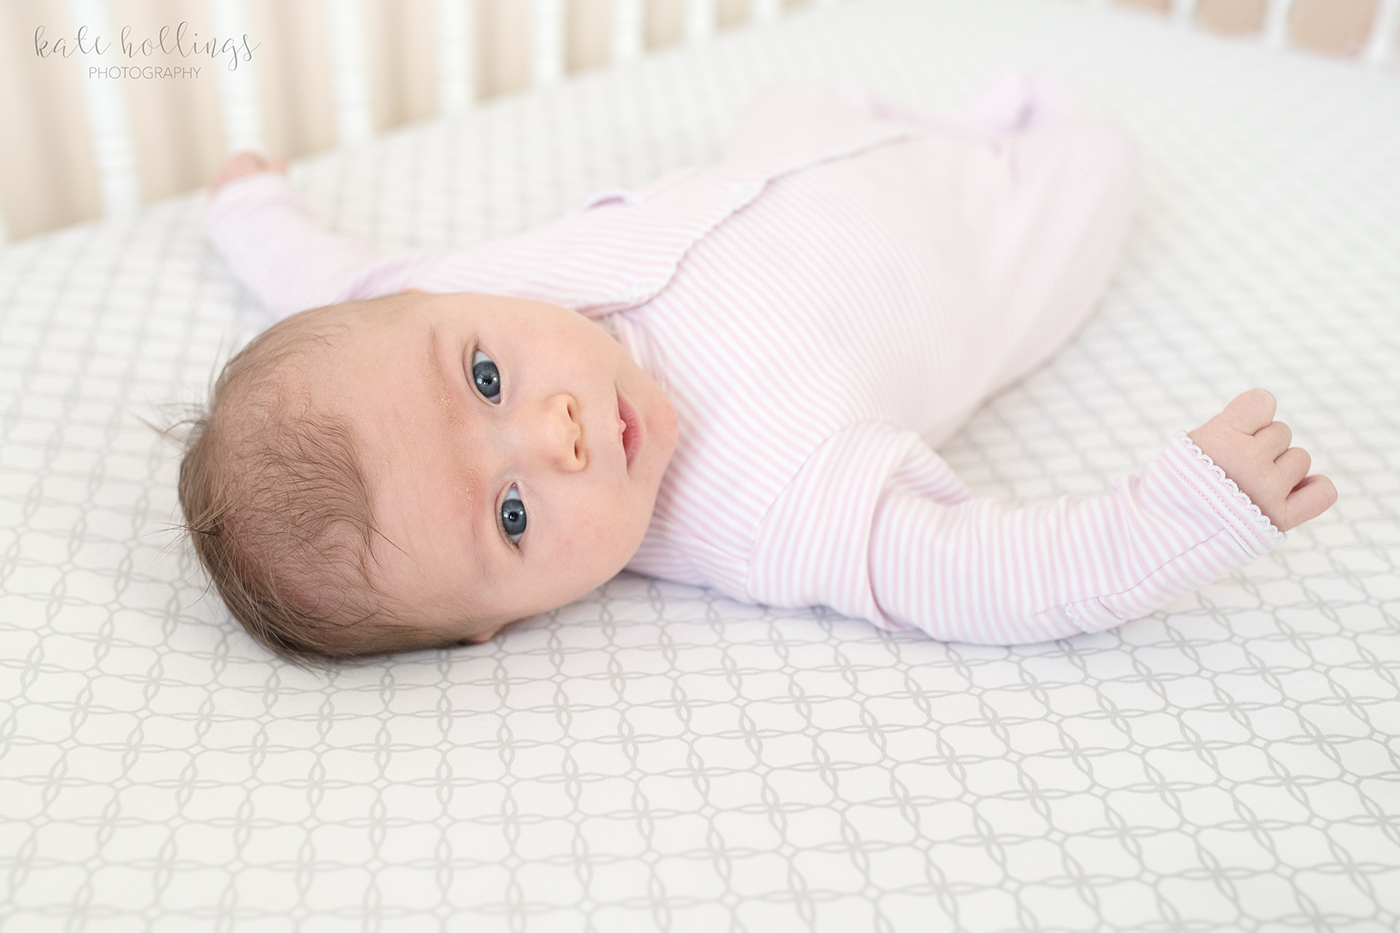 Baby girl, two months old - 2